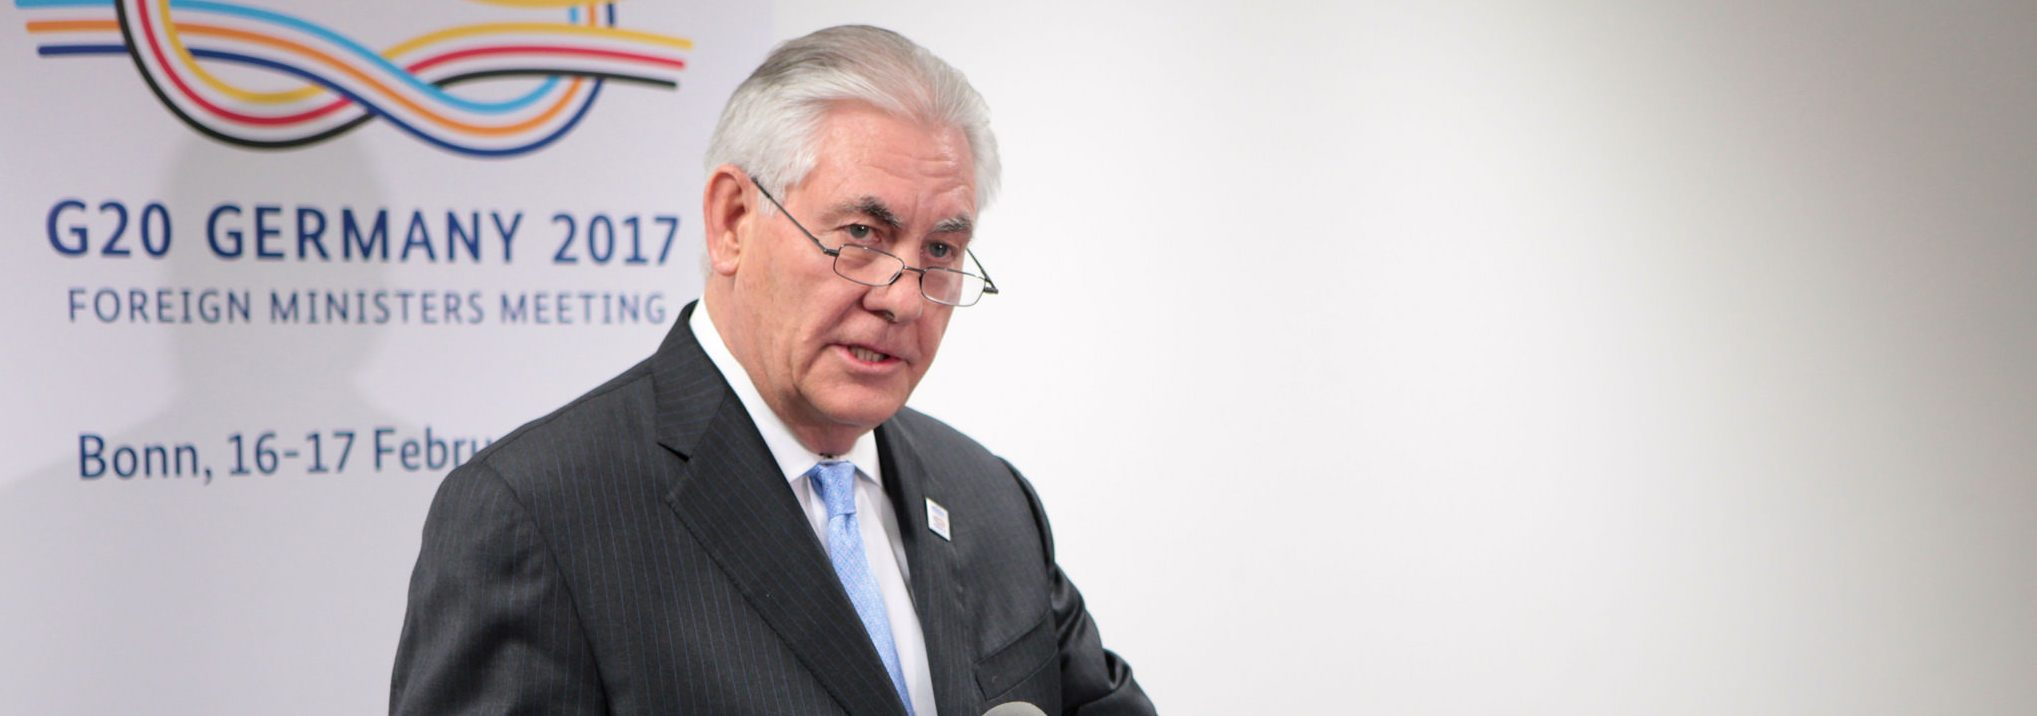 U.S. Secretary of State Rex Tillerson addresses reporters following his bilateral meeting with Russian Foreign Minister Sergey Lavrov on the sidelines of the G-20 Foreign Ministers' Meeting in Bonn, Germany, on February 16, 2017. This is his first official trip as Secretary of State. [State Department photo/ Public Domain]